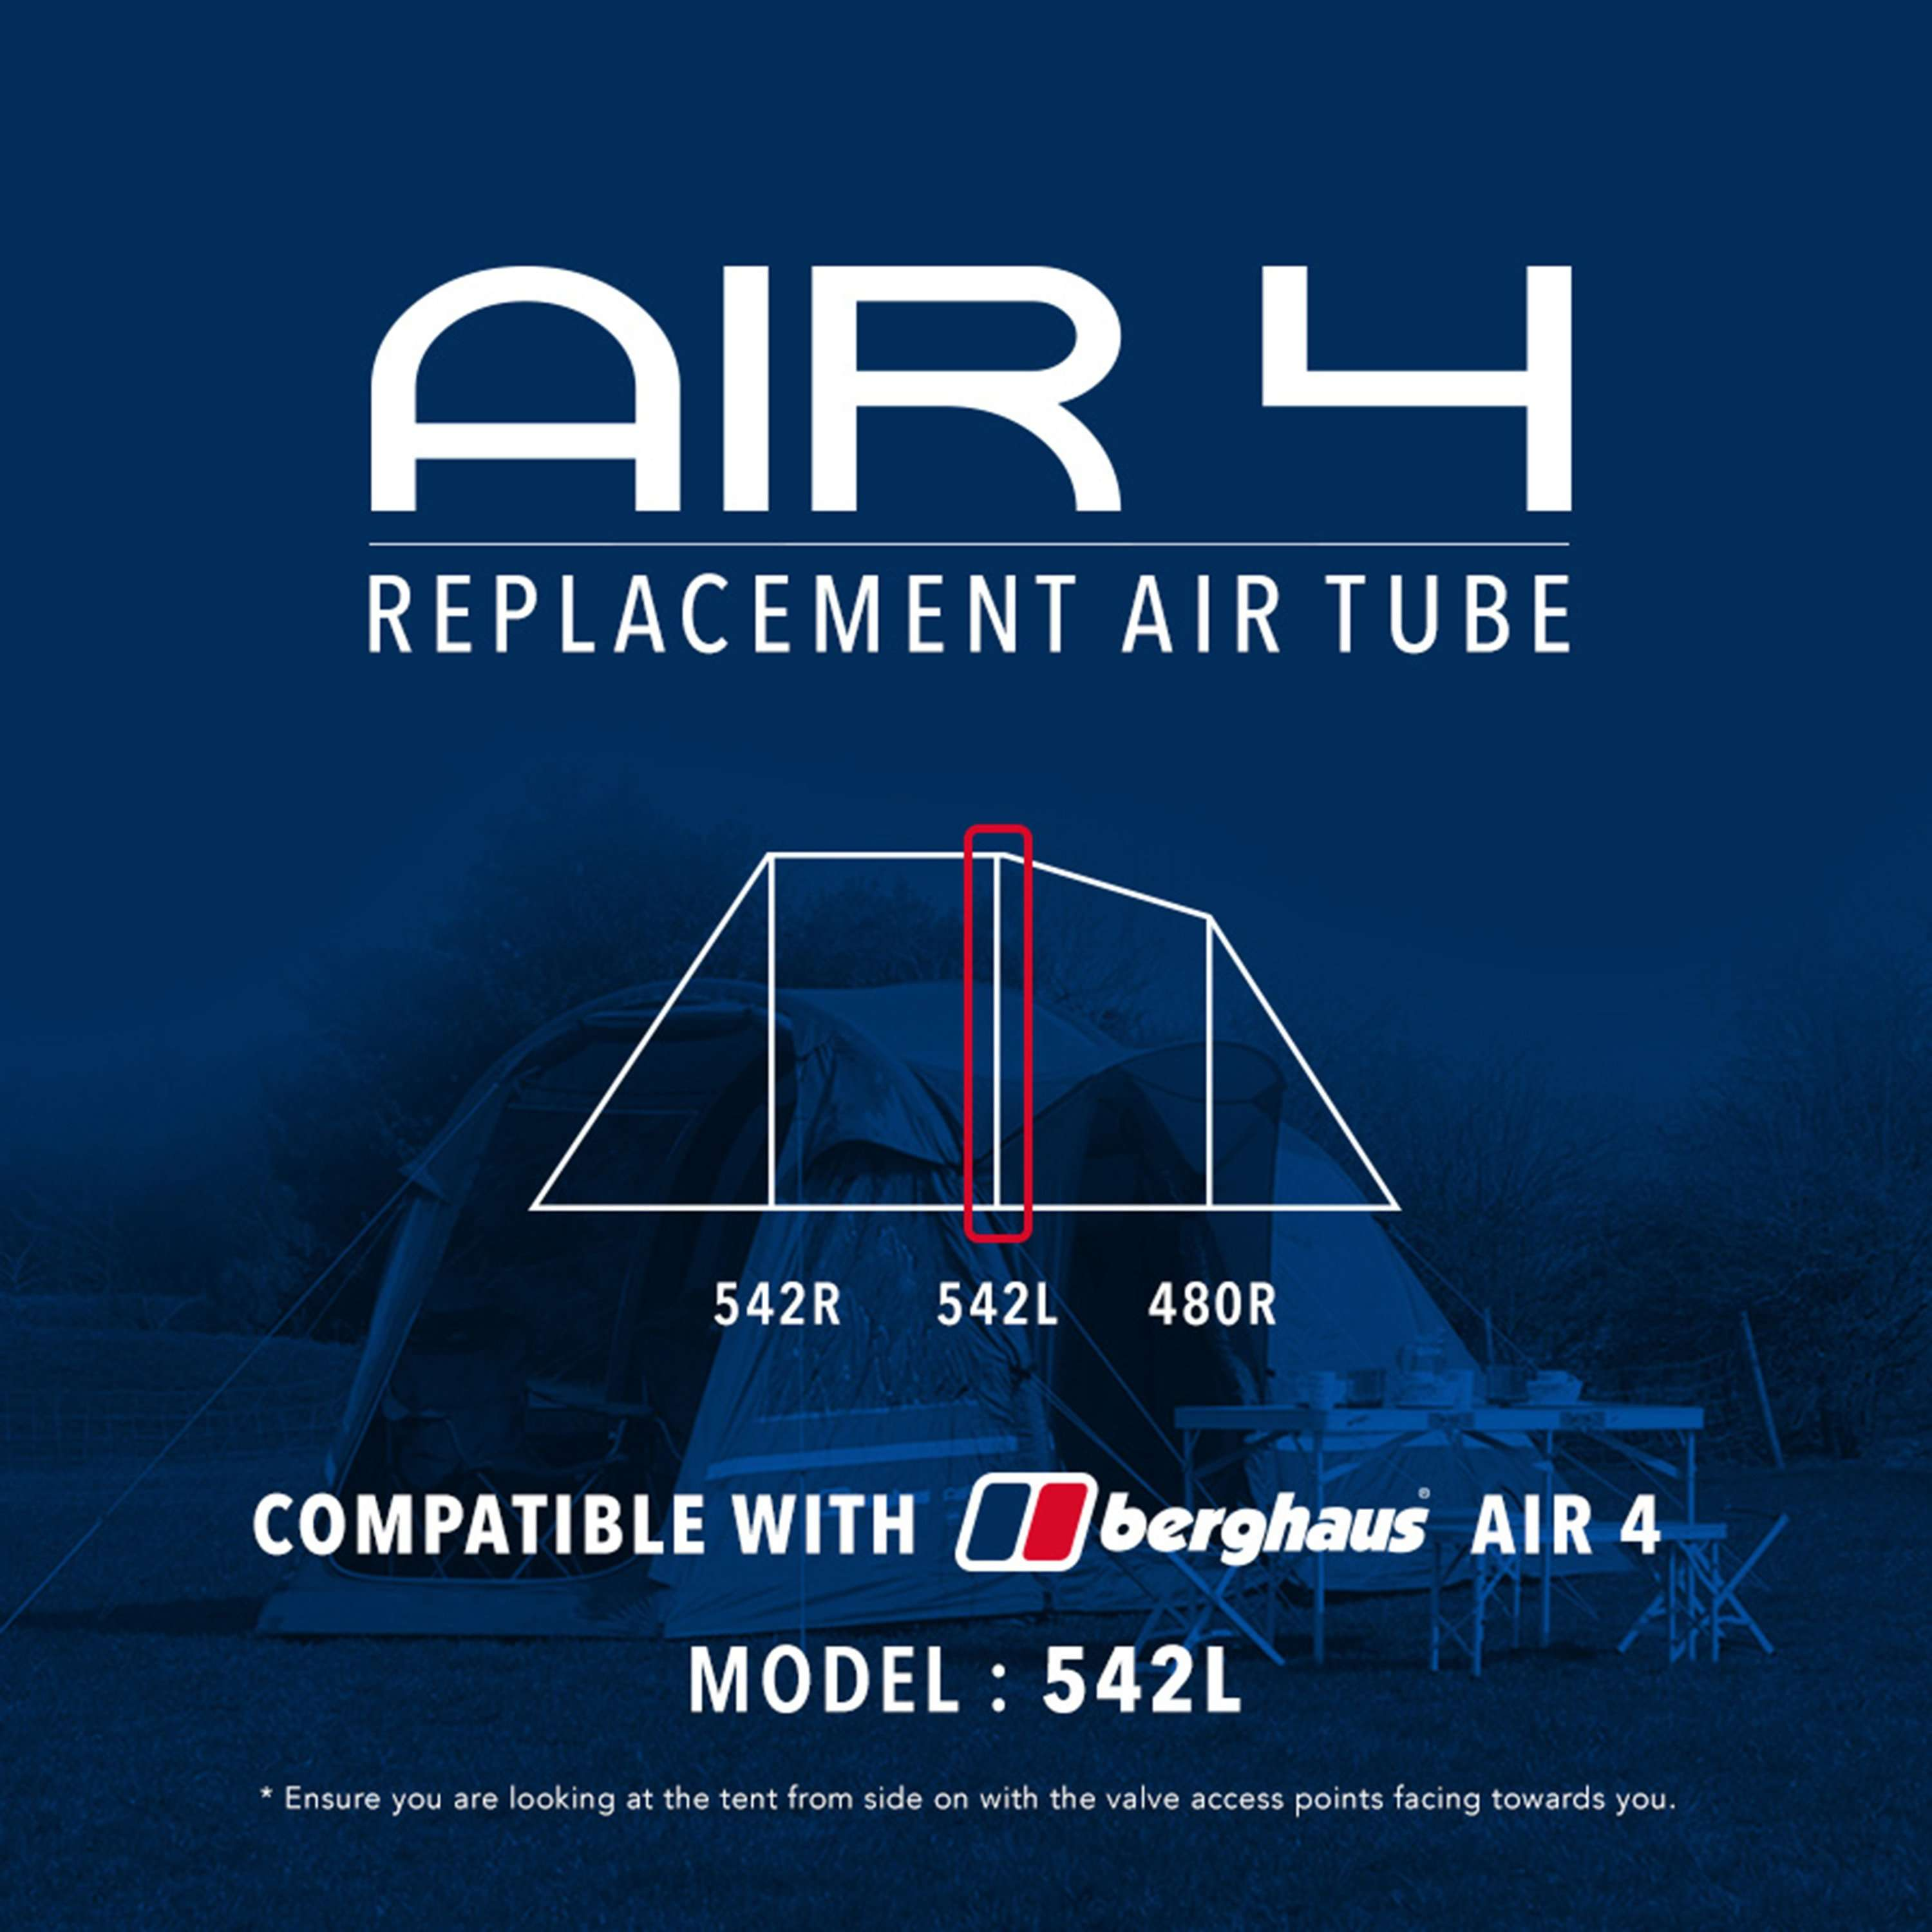 EUROHIKE Air 4 Tent Replacement Air Tube - 542L